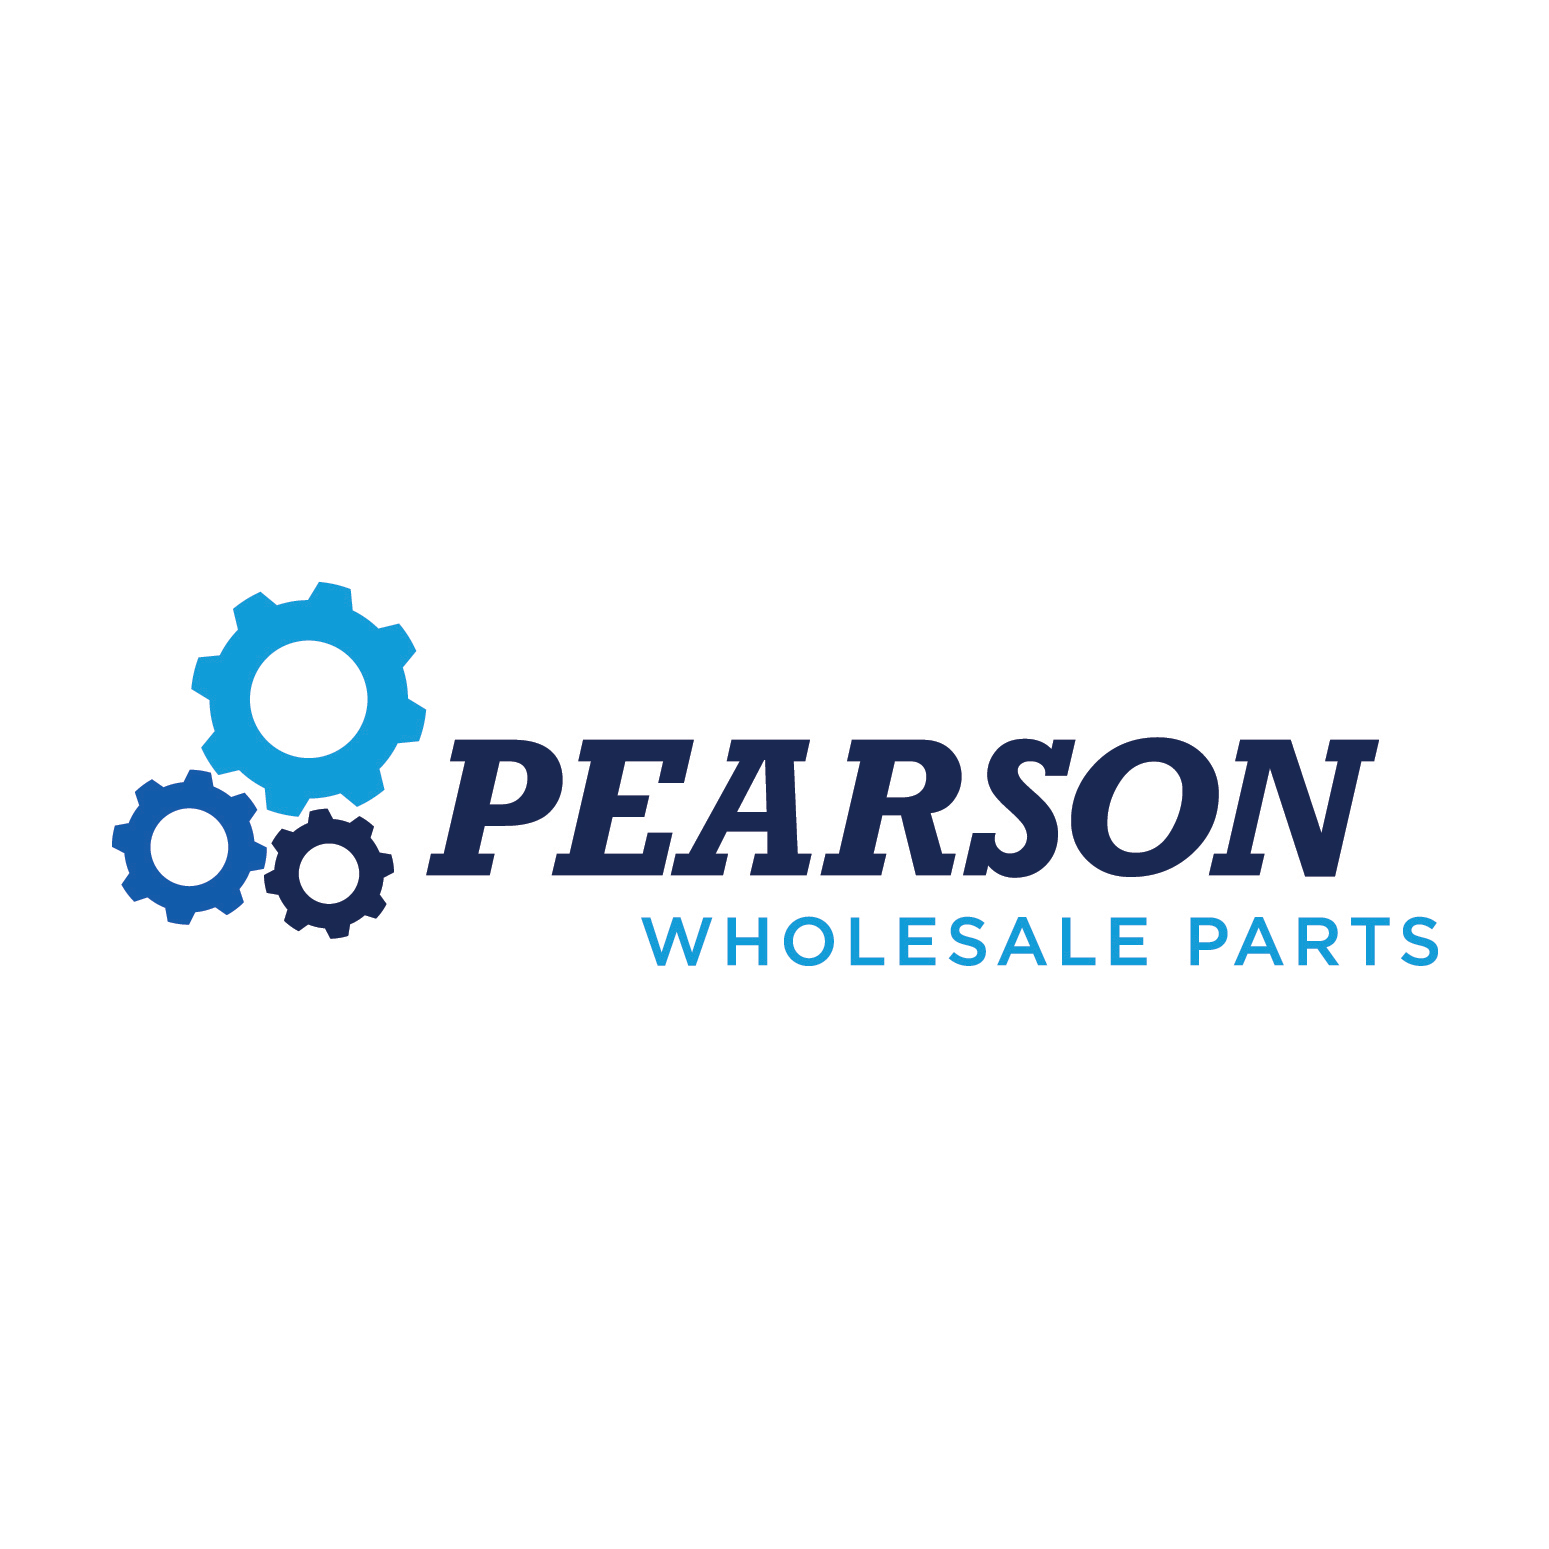 Pearson Wholesale Parts